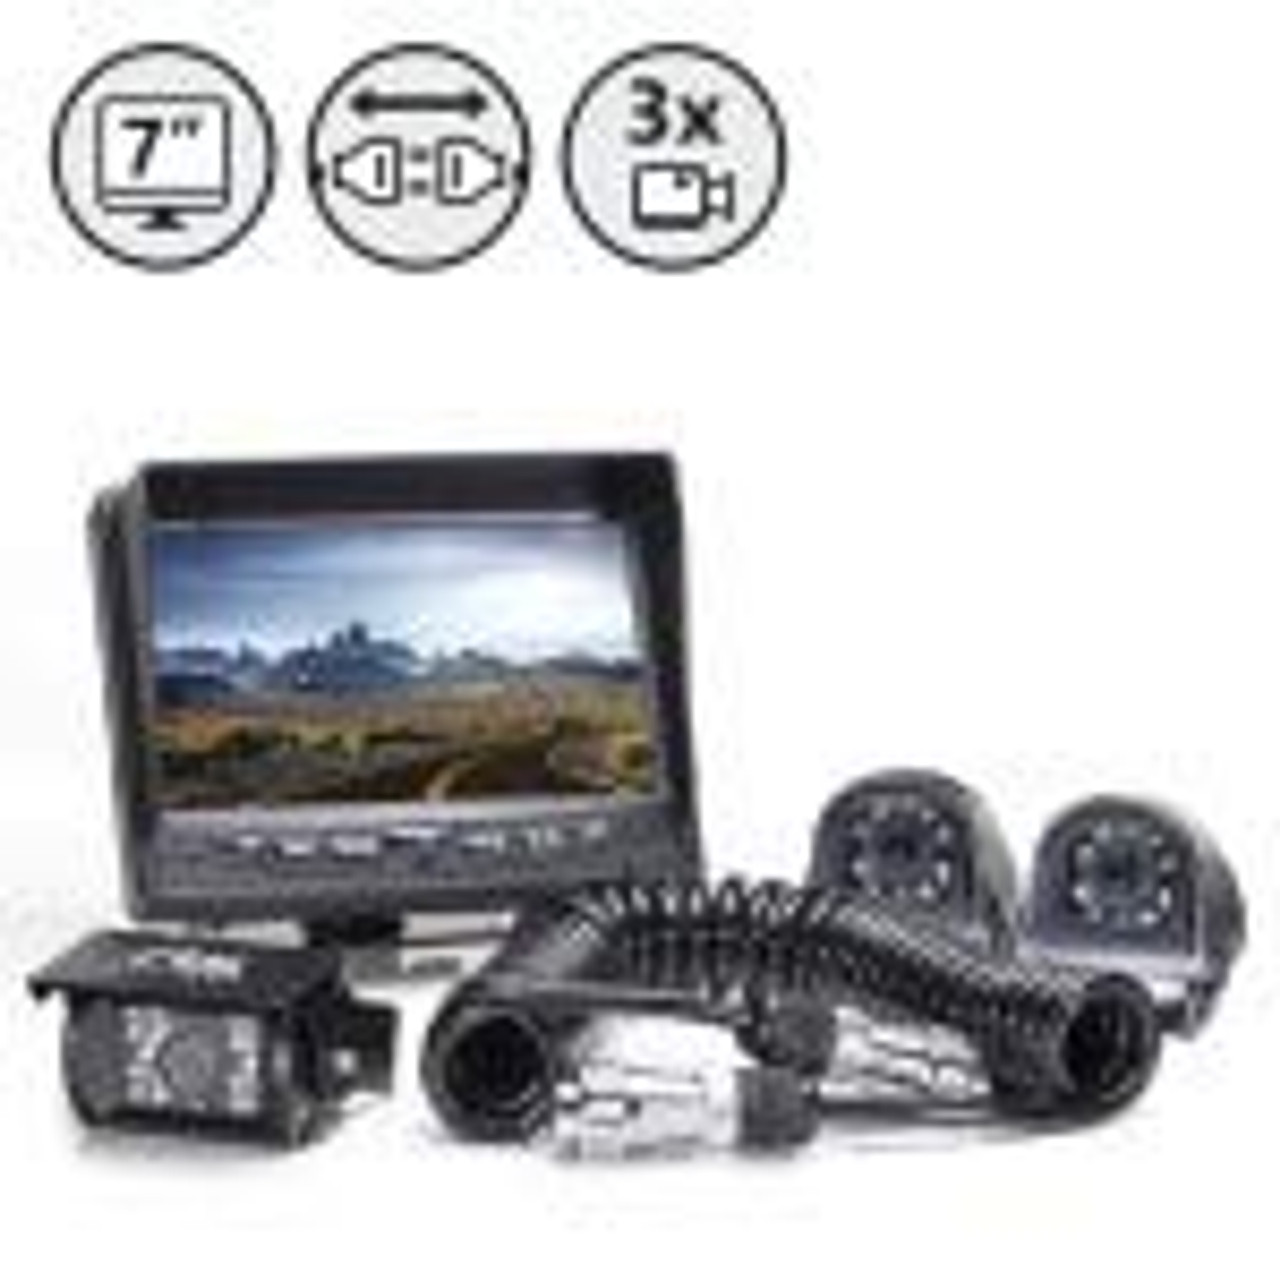 "7"" Display, Backup Camera, Both Side Cameras, Trailer Tow Quick Connect/Disconnect Kit for Multiple Cameras, 66' Cable, 2 x 33' Cables 